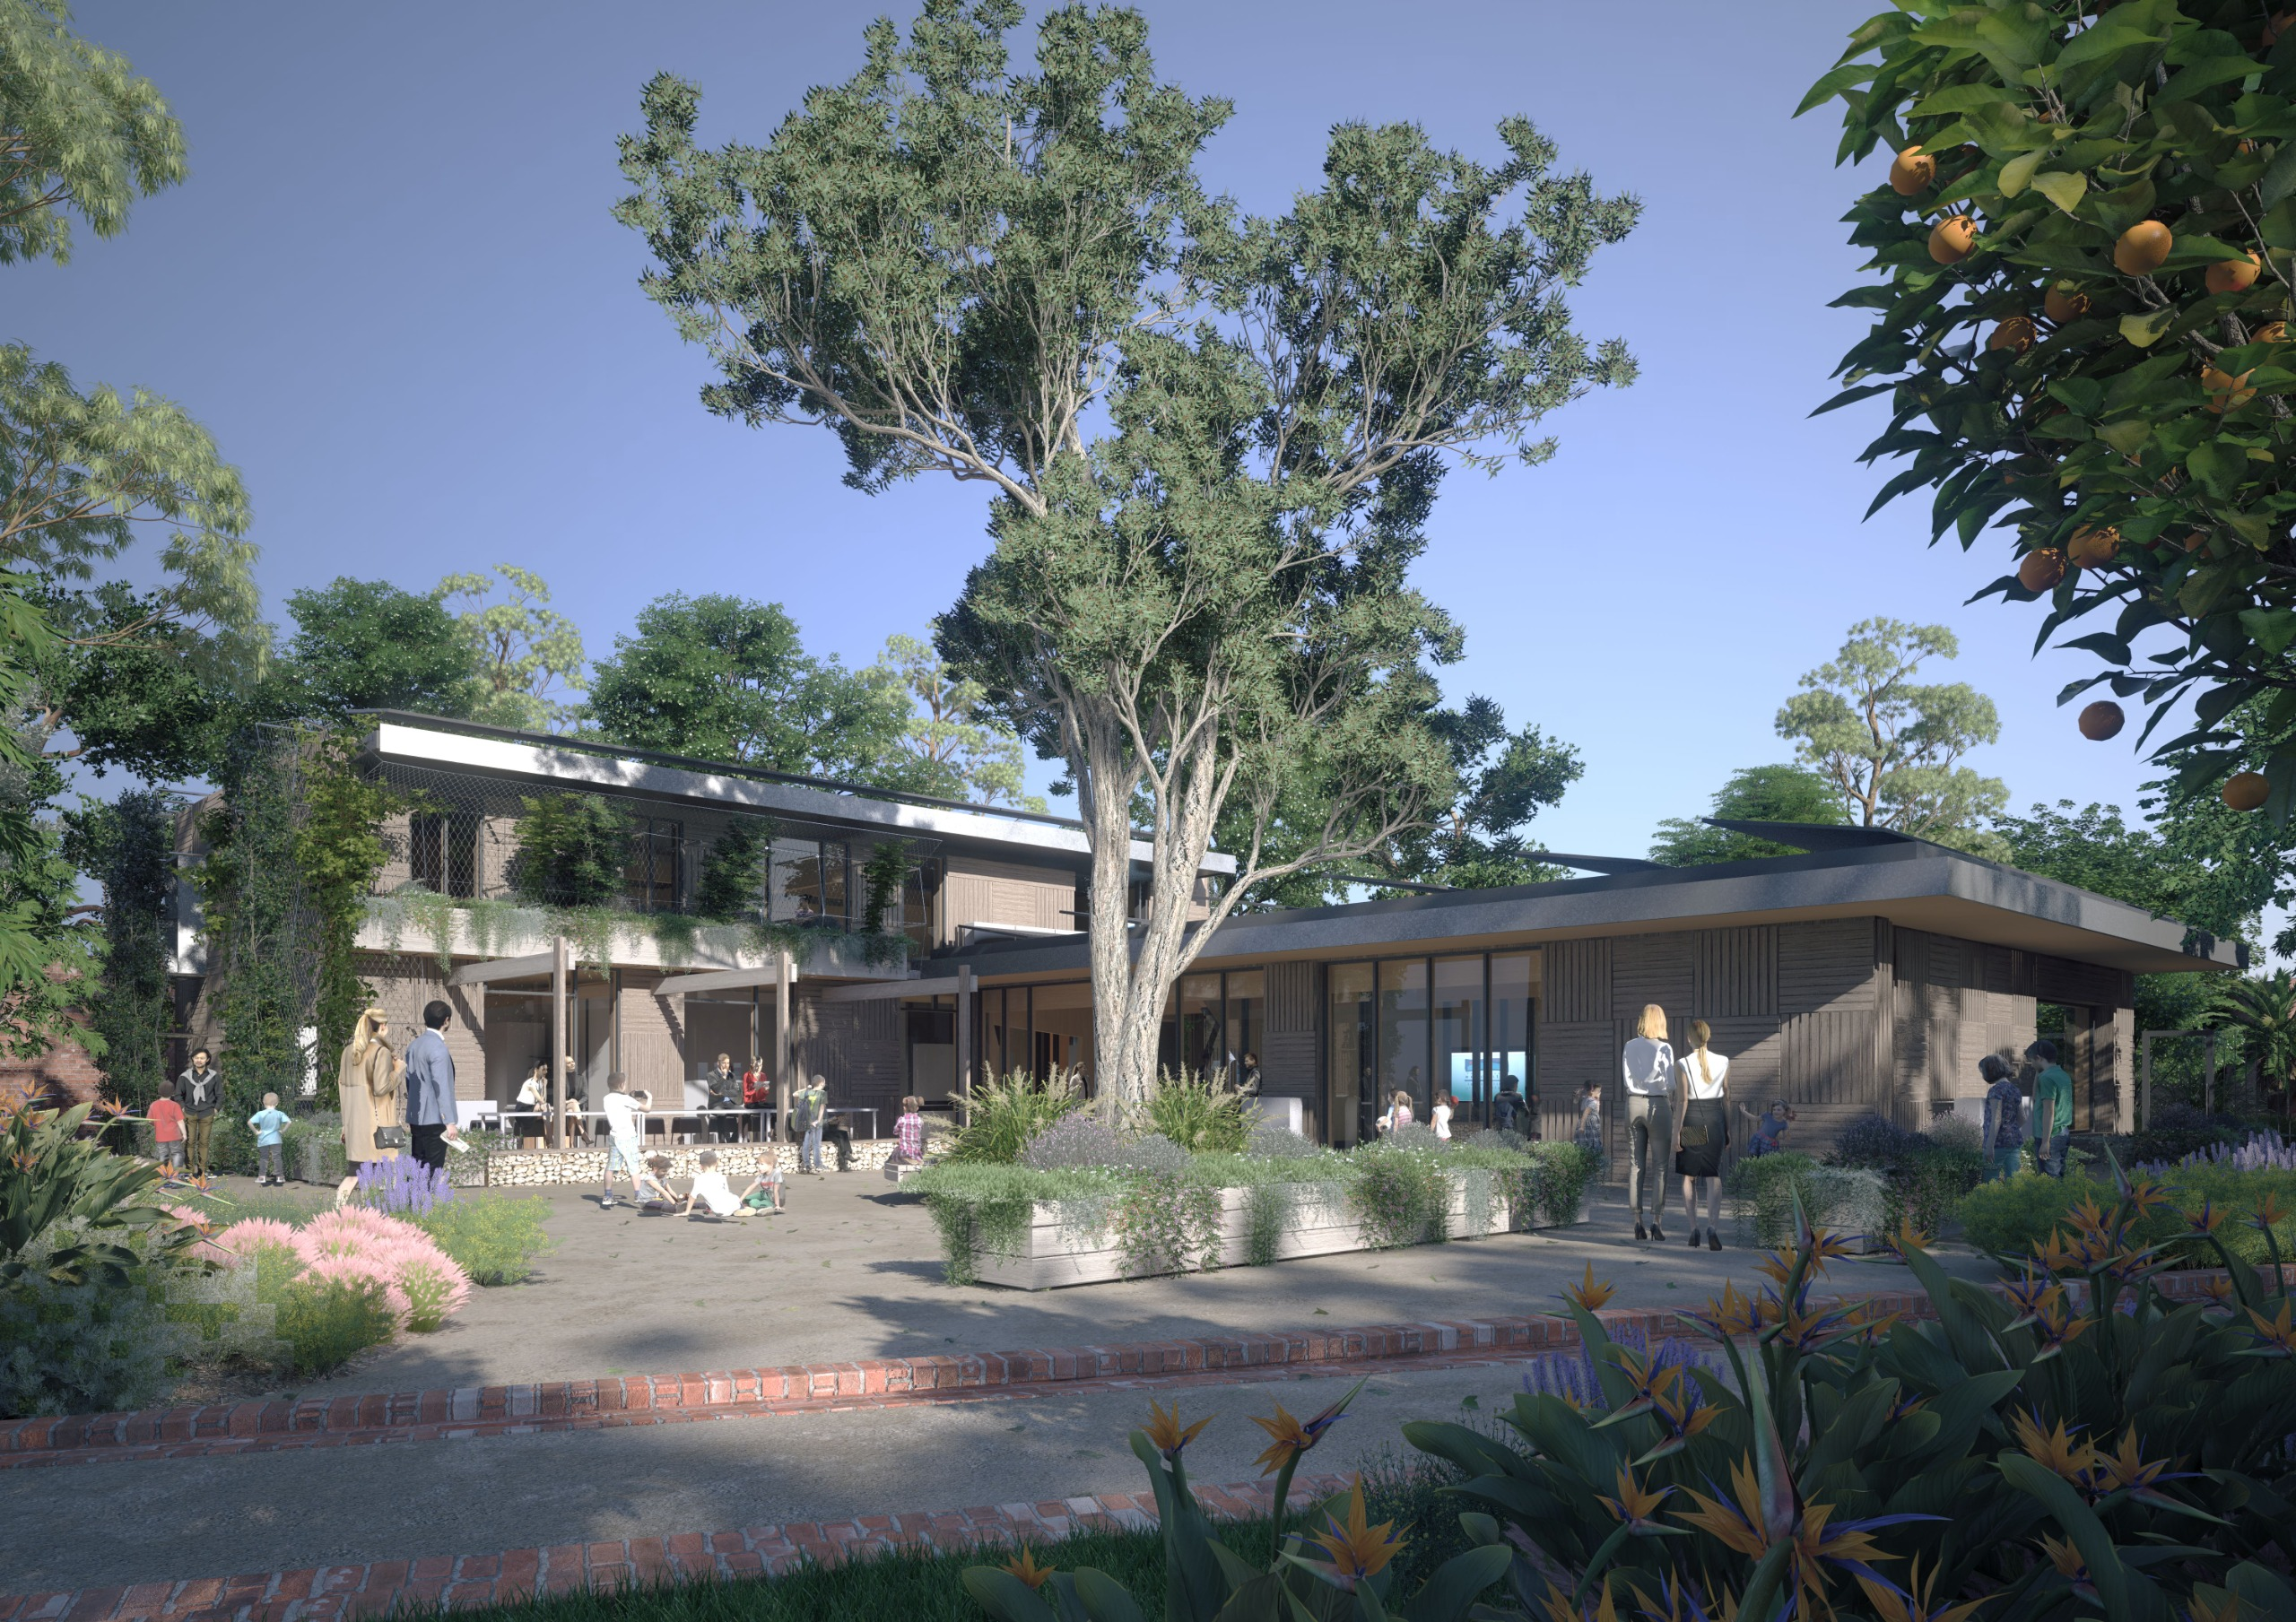 Artist's impression of the courtyard from the St Kilda Botanical G